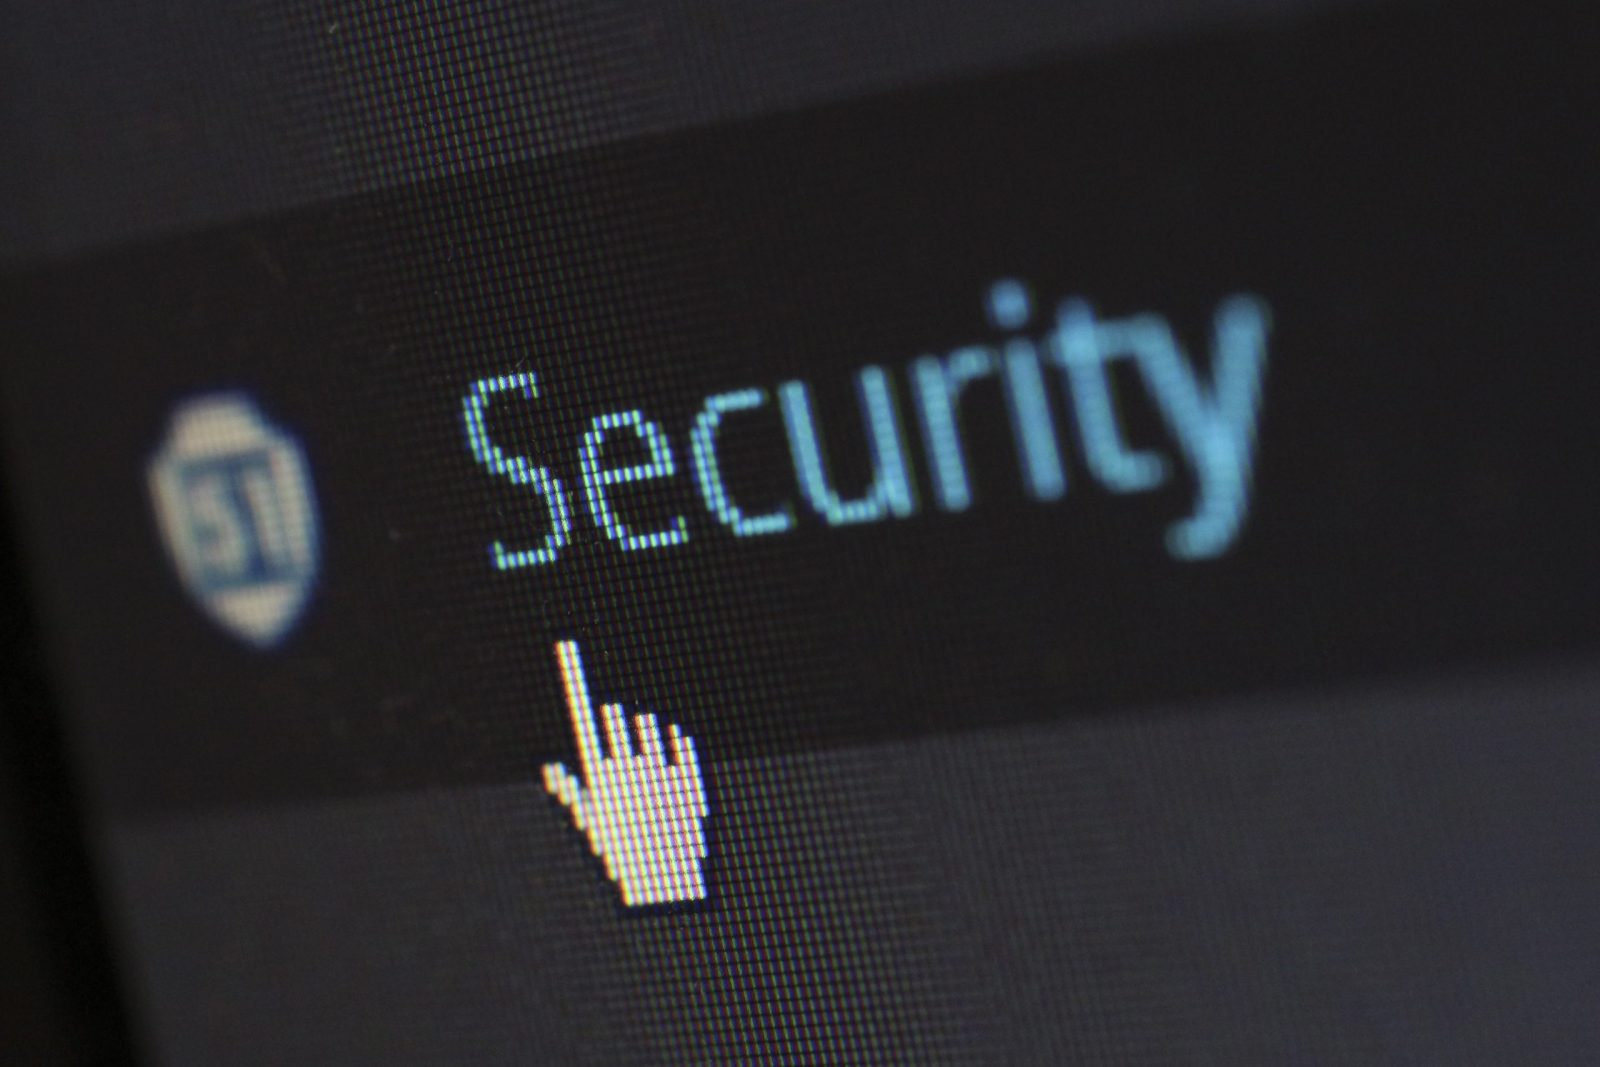 cyber-security-cybersecurity-device-stezzo